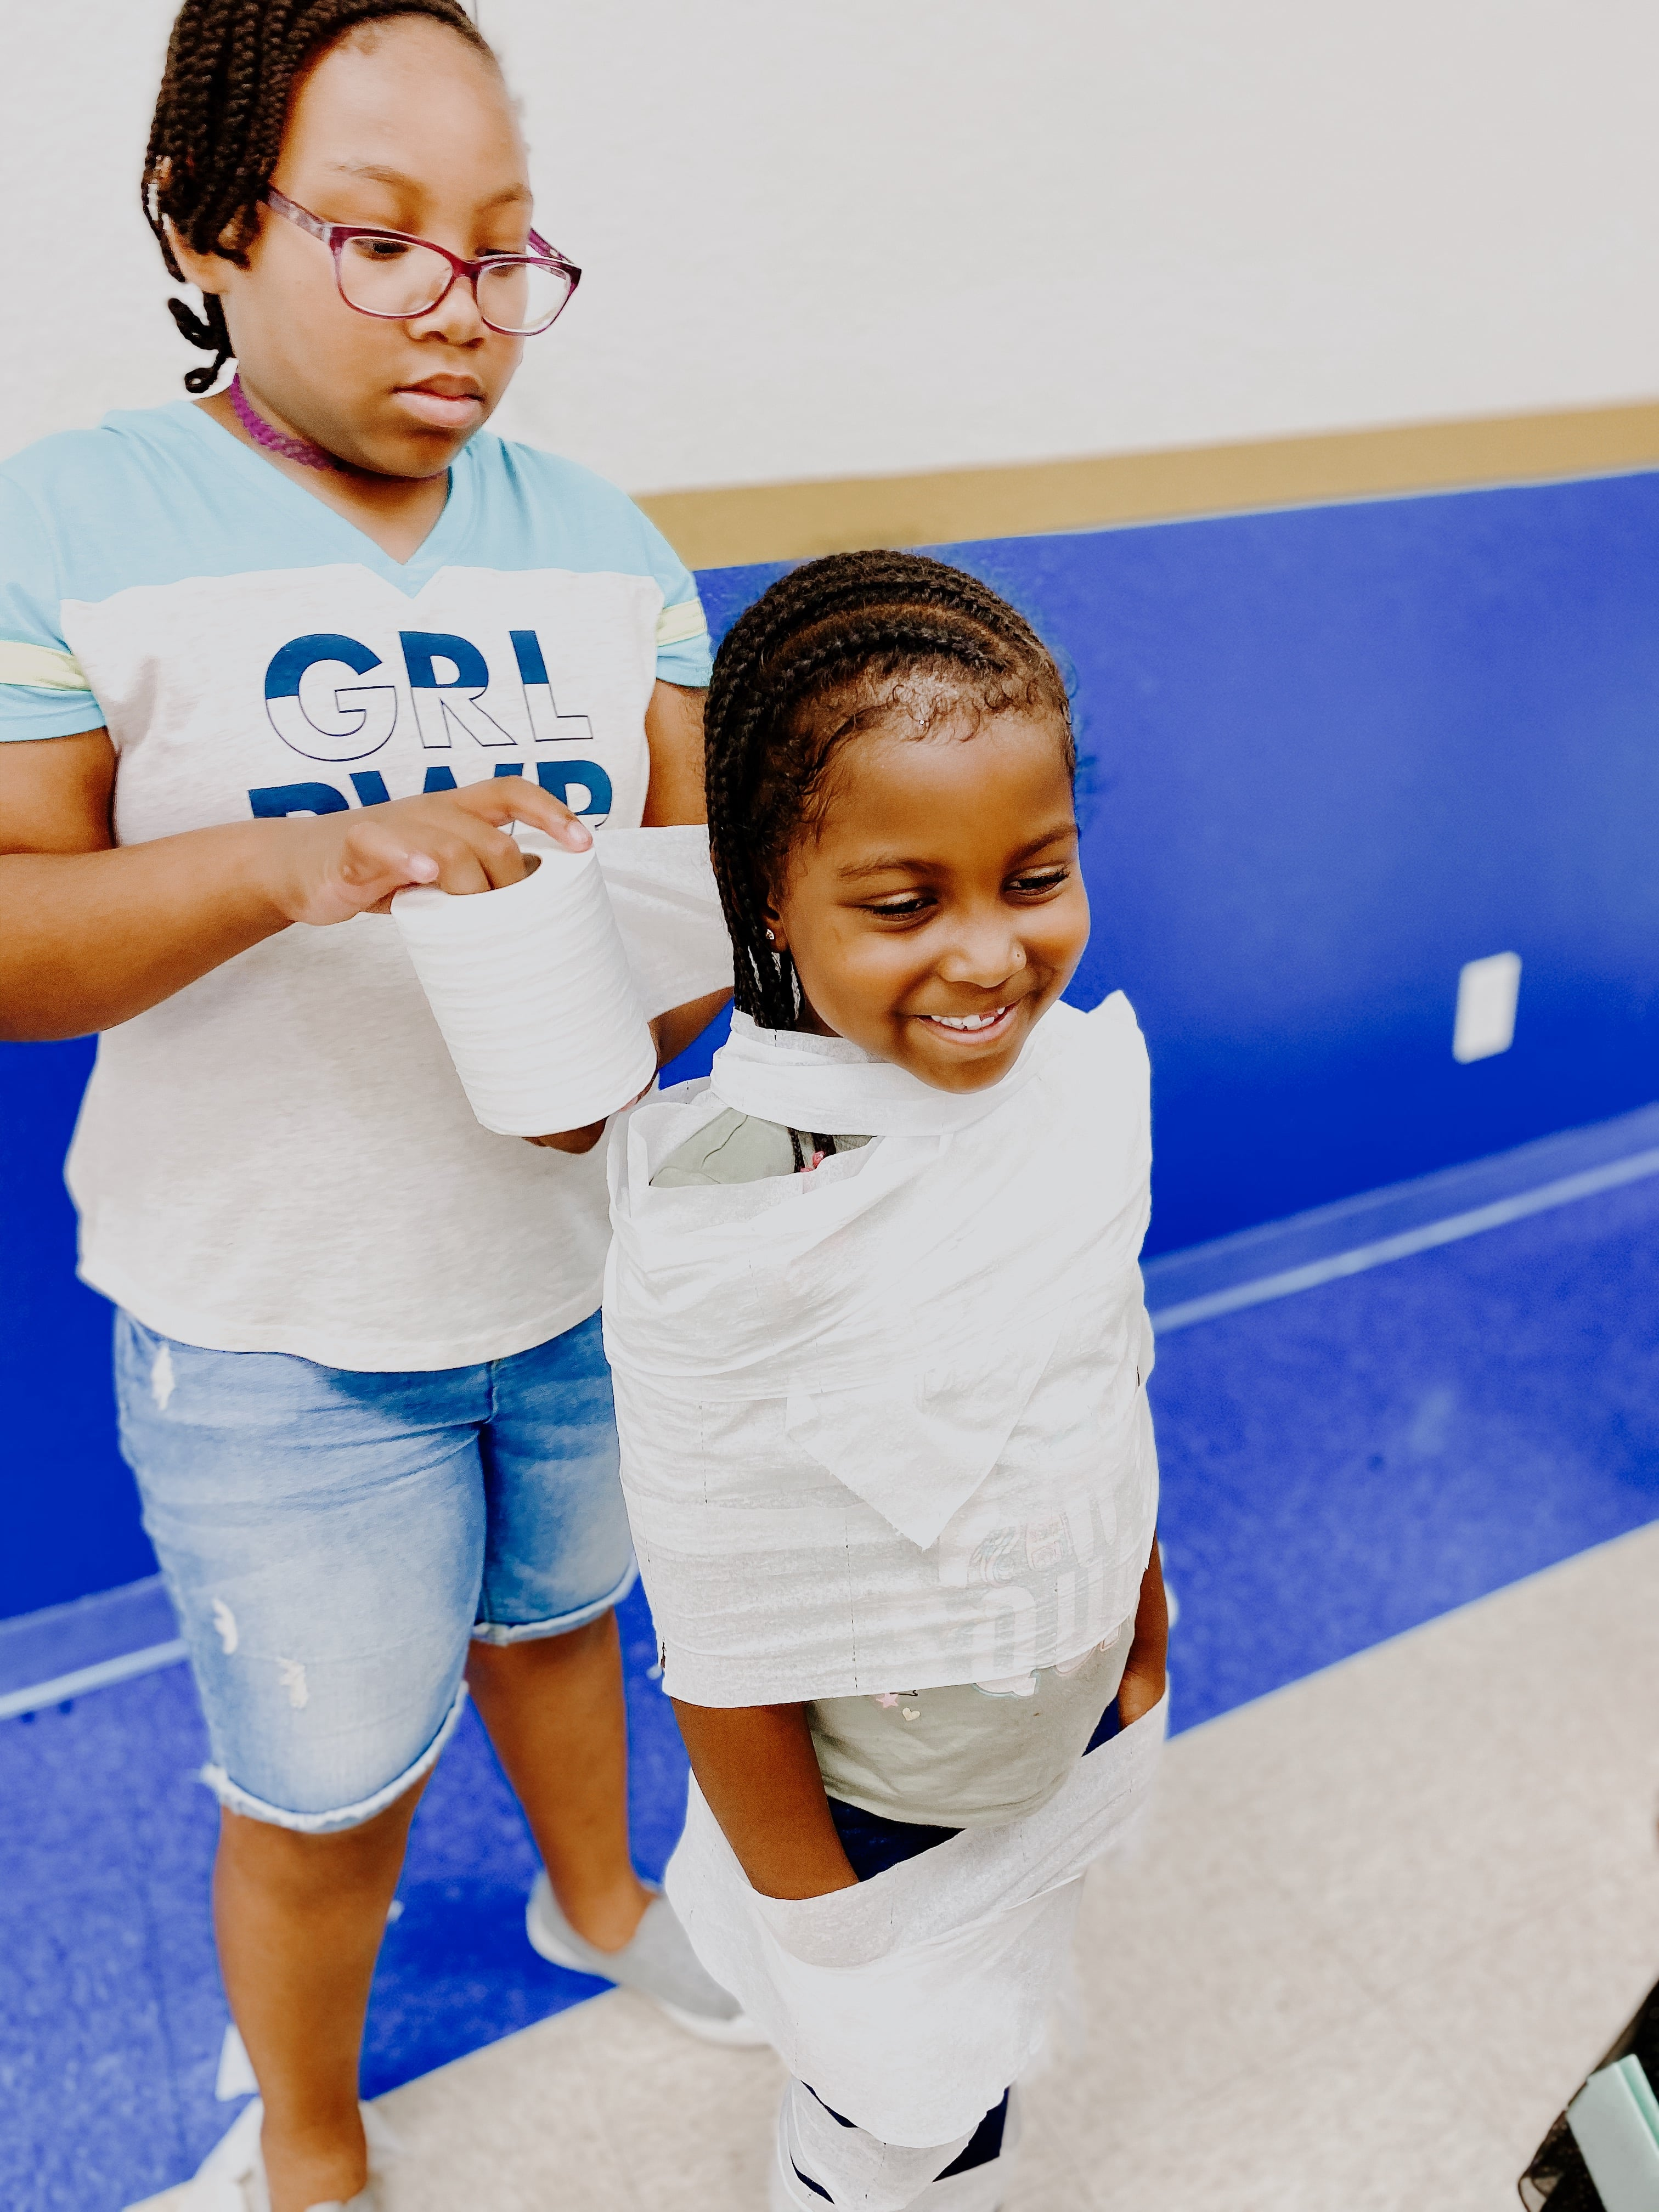 Day Camp 10/18/2019 Image number 8